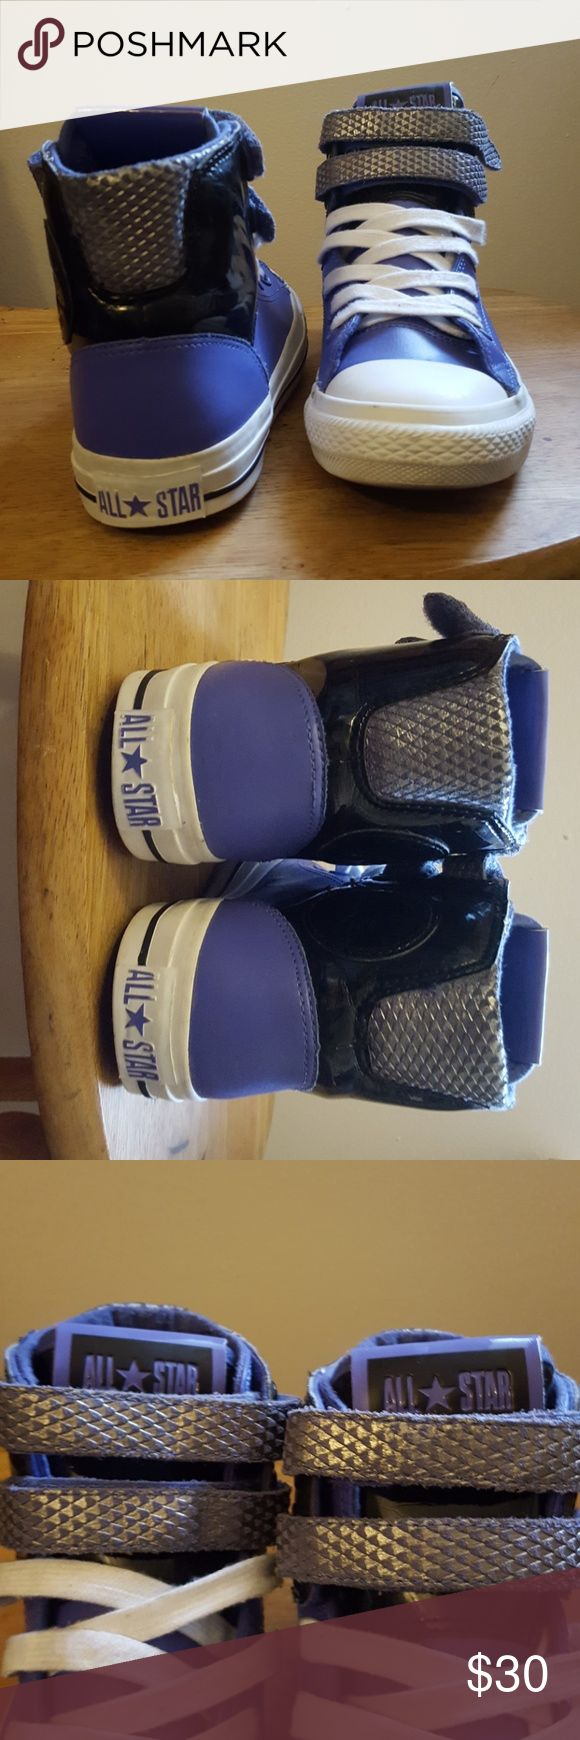 High top purple converse with Velcro Slightly worn/lightly scuffed; They are a male size 5 shoe so when looking at the bottom that is why it says 5. Converse Shoes Lace Up Boots